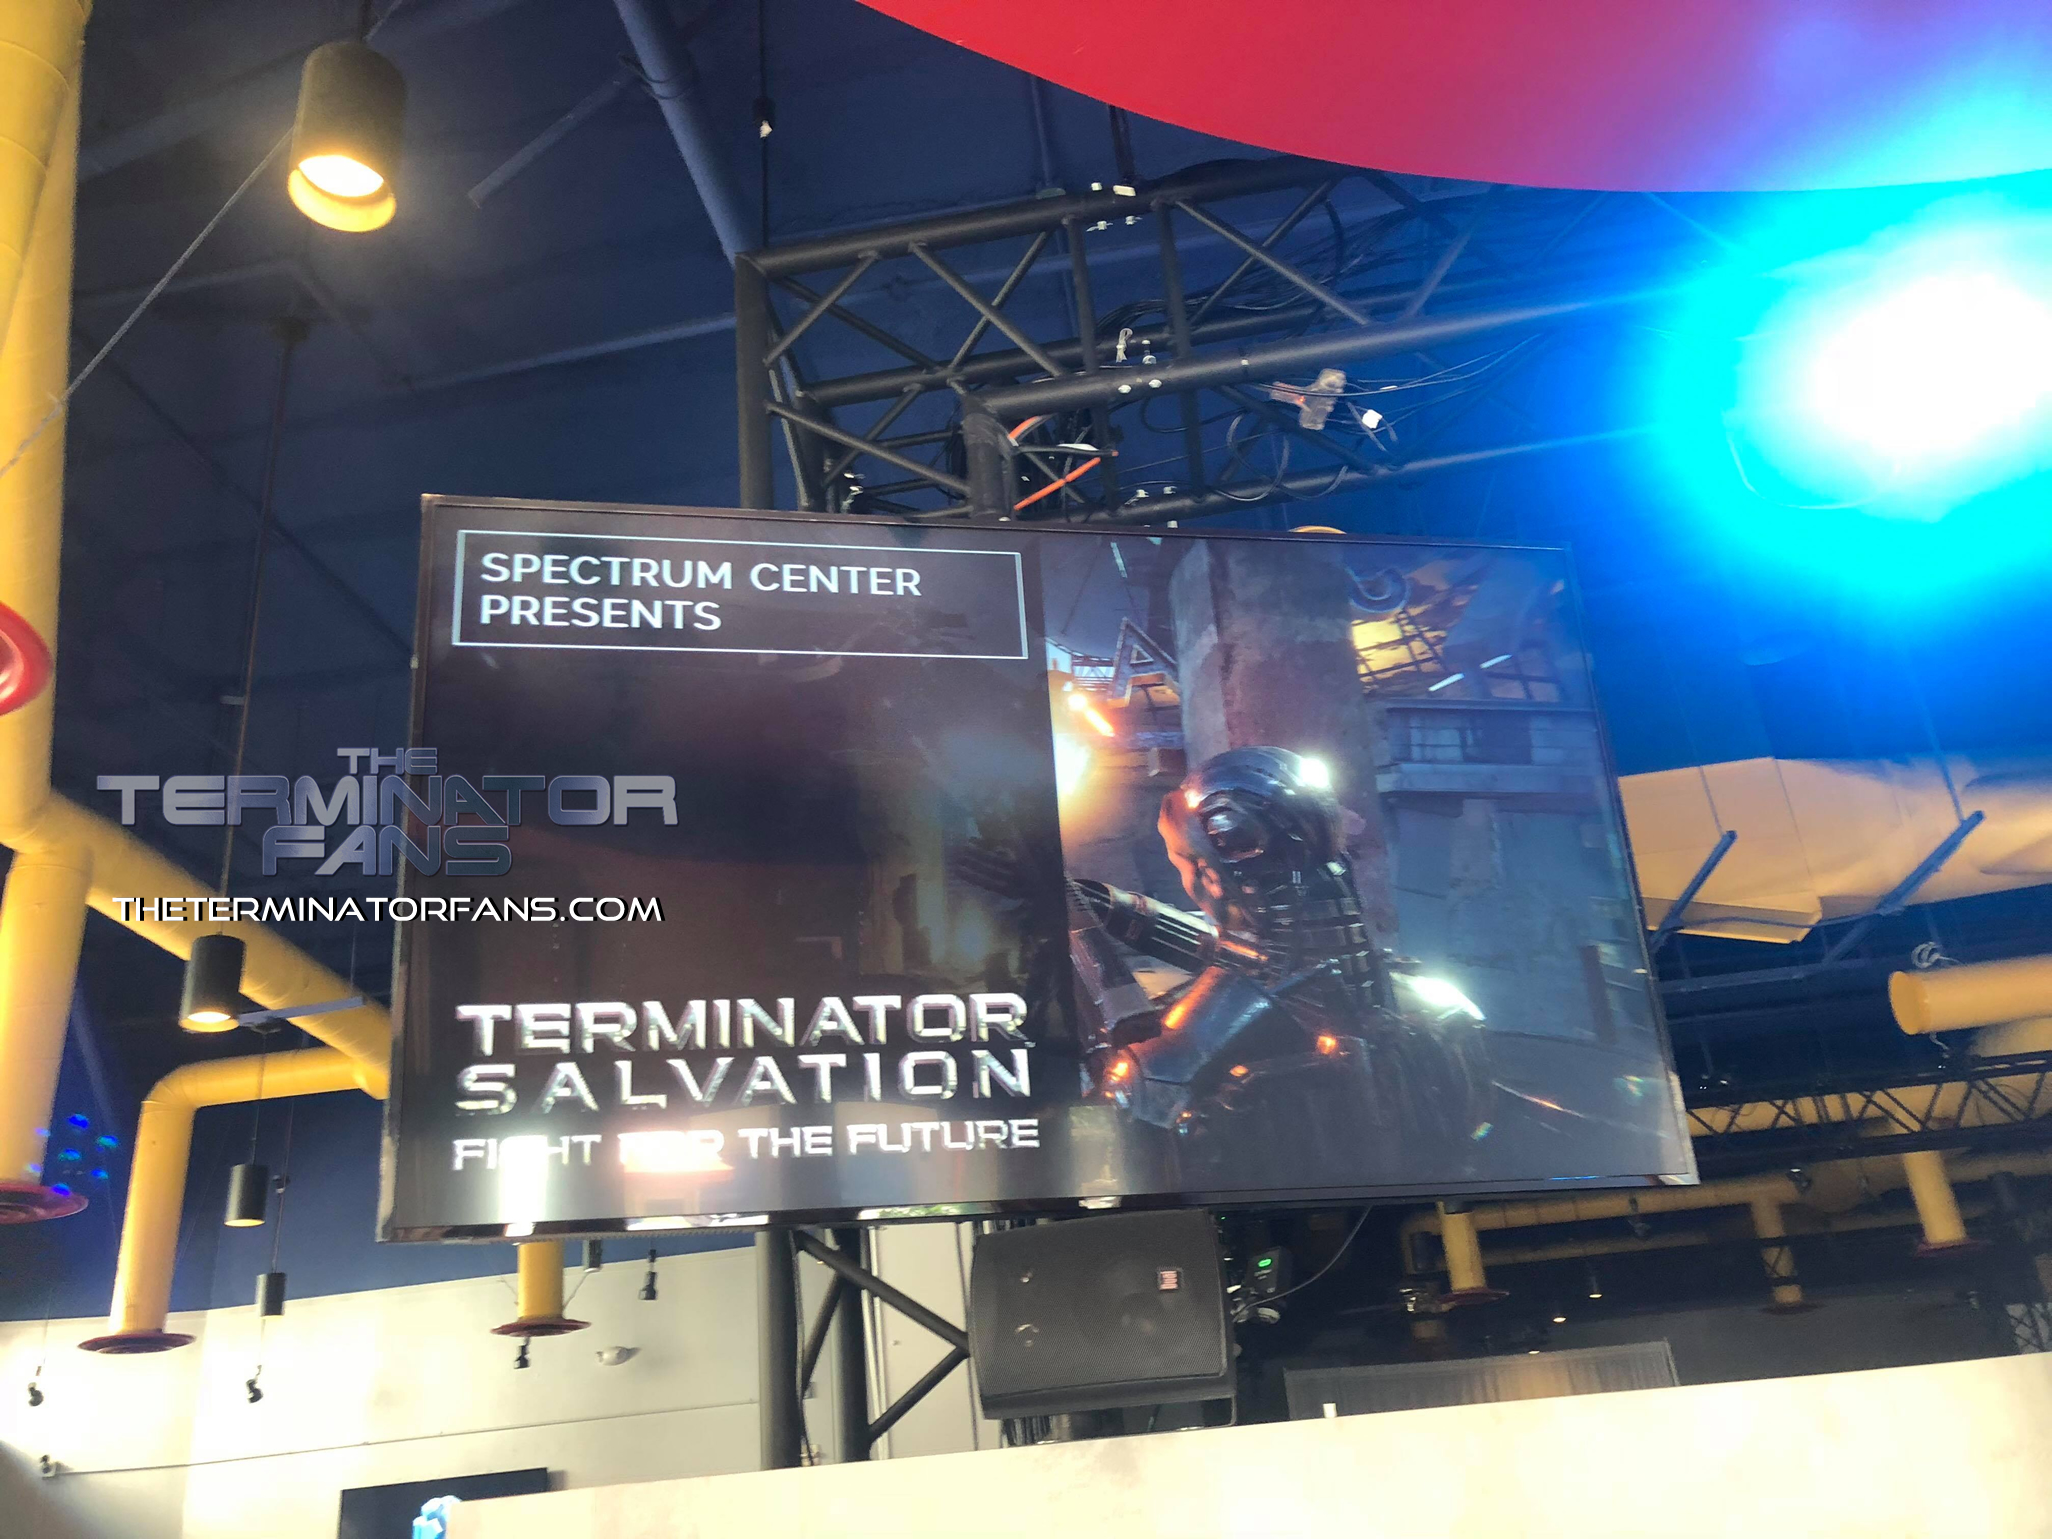 Terminator Salvation: Fight For The Future VR by SPACES